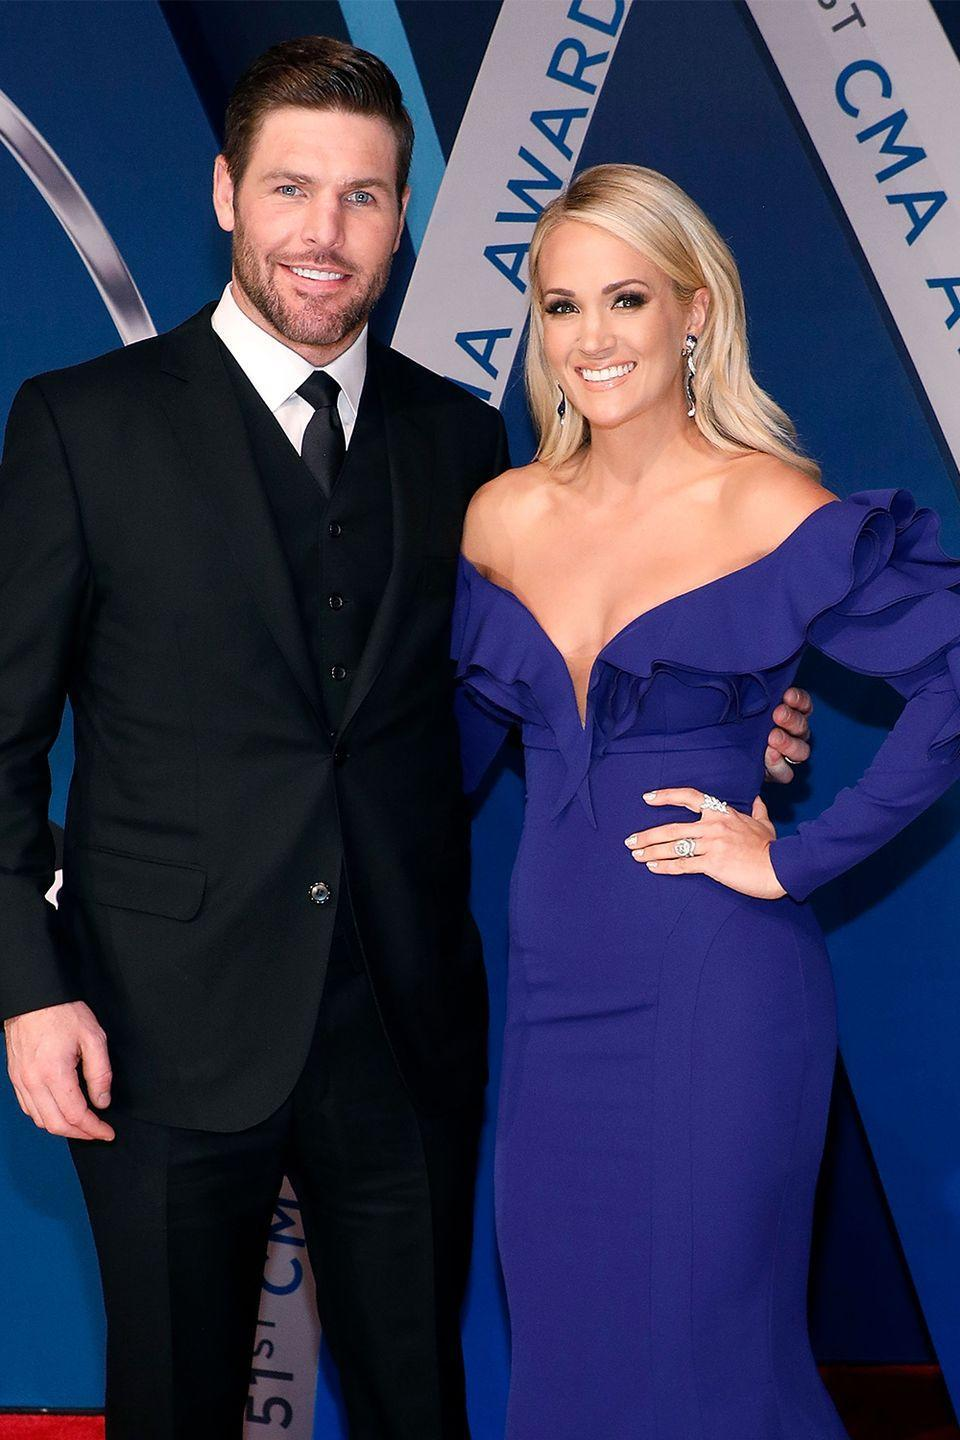 """<p>The GRAMMY-winning country singer met her NHL player husband after they were set up on a blind date by friends...despite the fact they lived in different countries at the time.</p><p>""""I mean, can I make dating more difficult?"""" Underwood said on<a href=""""http://ew.com/article/2012/09/28/carrie-underwood-mike-fisher-behind-the-music/?"""" rel=""""nofollow noopener"""" target=""""_blank"""" data-ylk=""""slk:VH1's"""" class=""""link rapid-noclick-resp""""> VH1's</a> <a href=""""https://www.countryliving.com/life/entertainment/a41996/carrie-underwood-mike-fisher-love-story/"""" rel=""""nofollow noopener"""" target=""""_blank"""" data-ylk=""""slk:Behind the Music"""" class=""""link rapid-noclick-resp""""><em>Behind the Music</em></a>. """"Let's get a hockey guy who lives in another country. Awesome.""""</p><p>It worked out, and the couple married in 2010 and have two children together.<br></p>"""